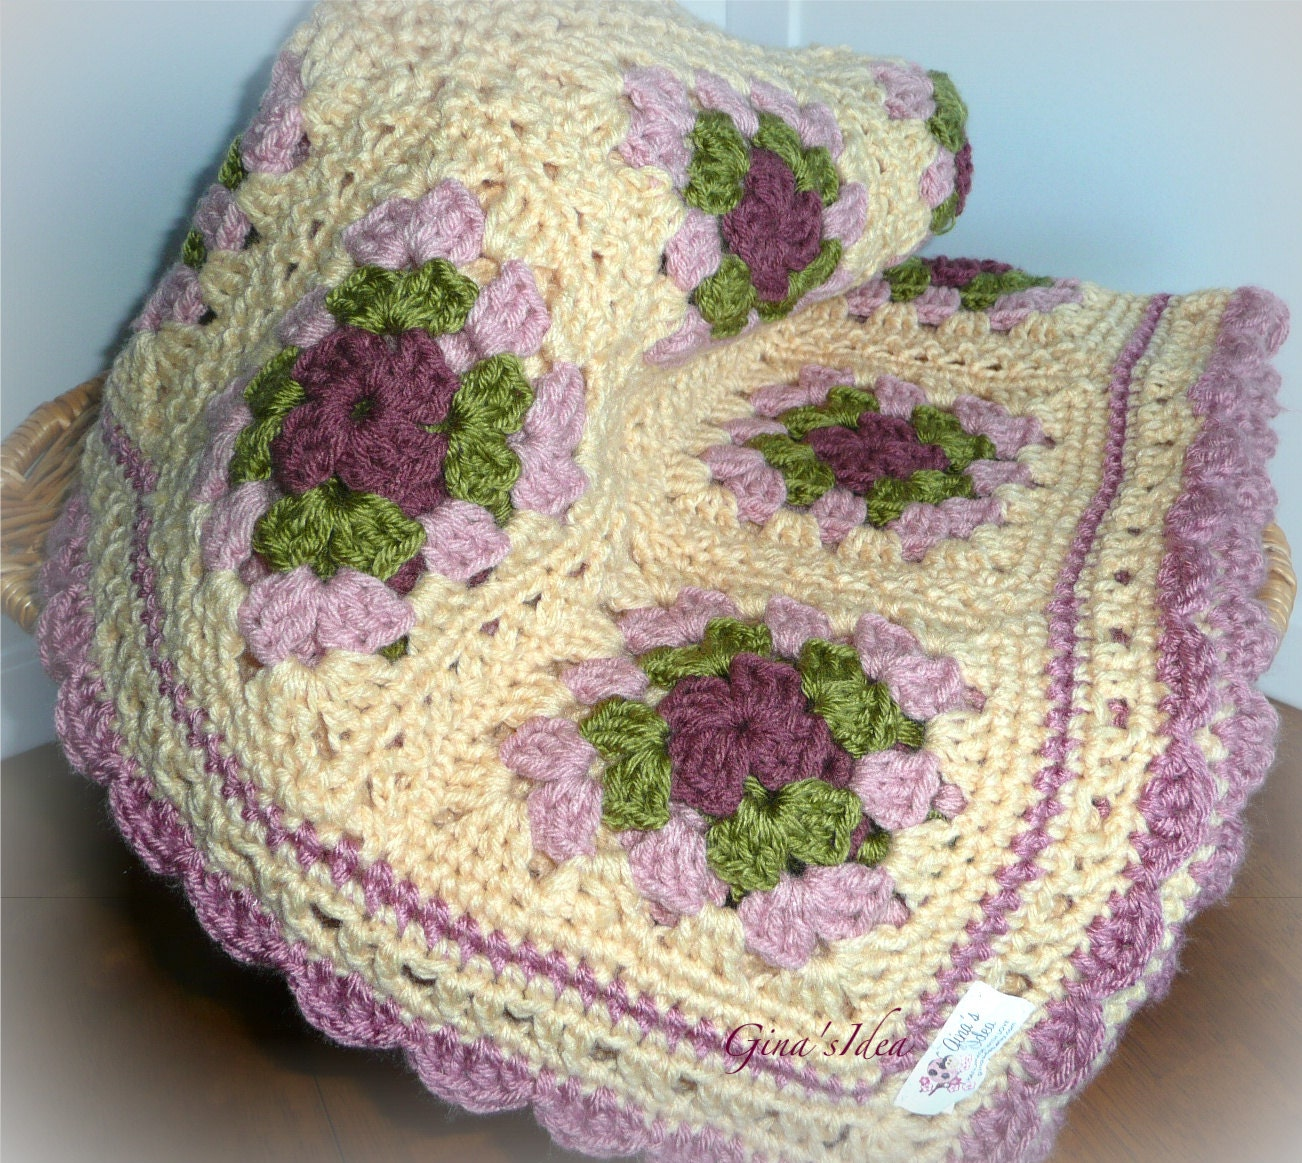 Crocheted Soft Baby Girl Blanket Afghan Granny Squares